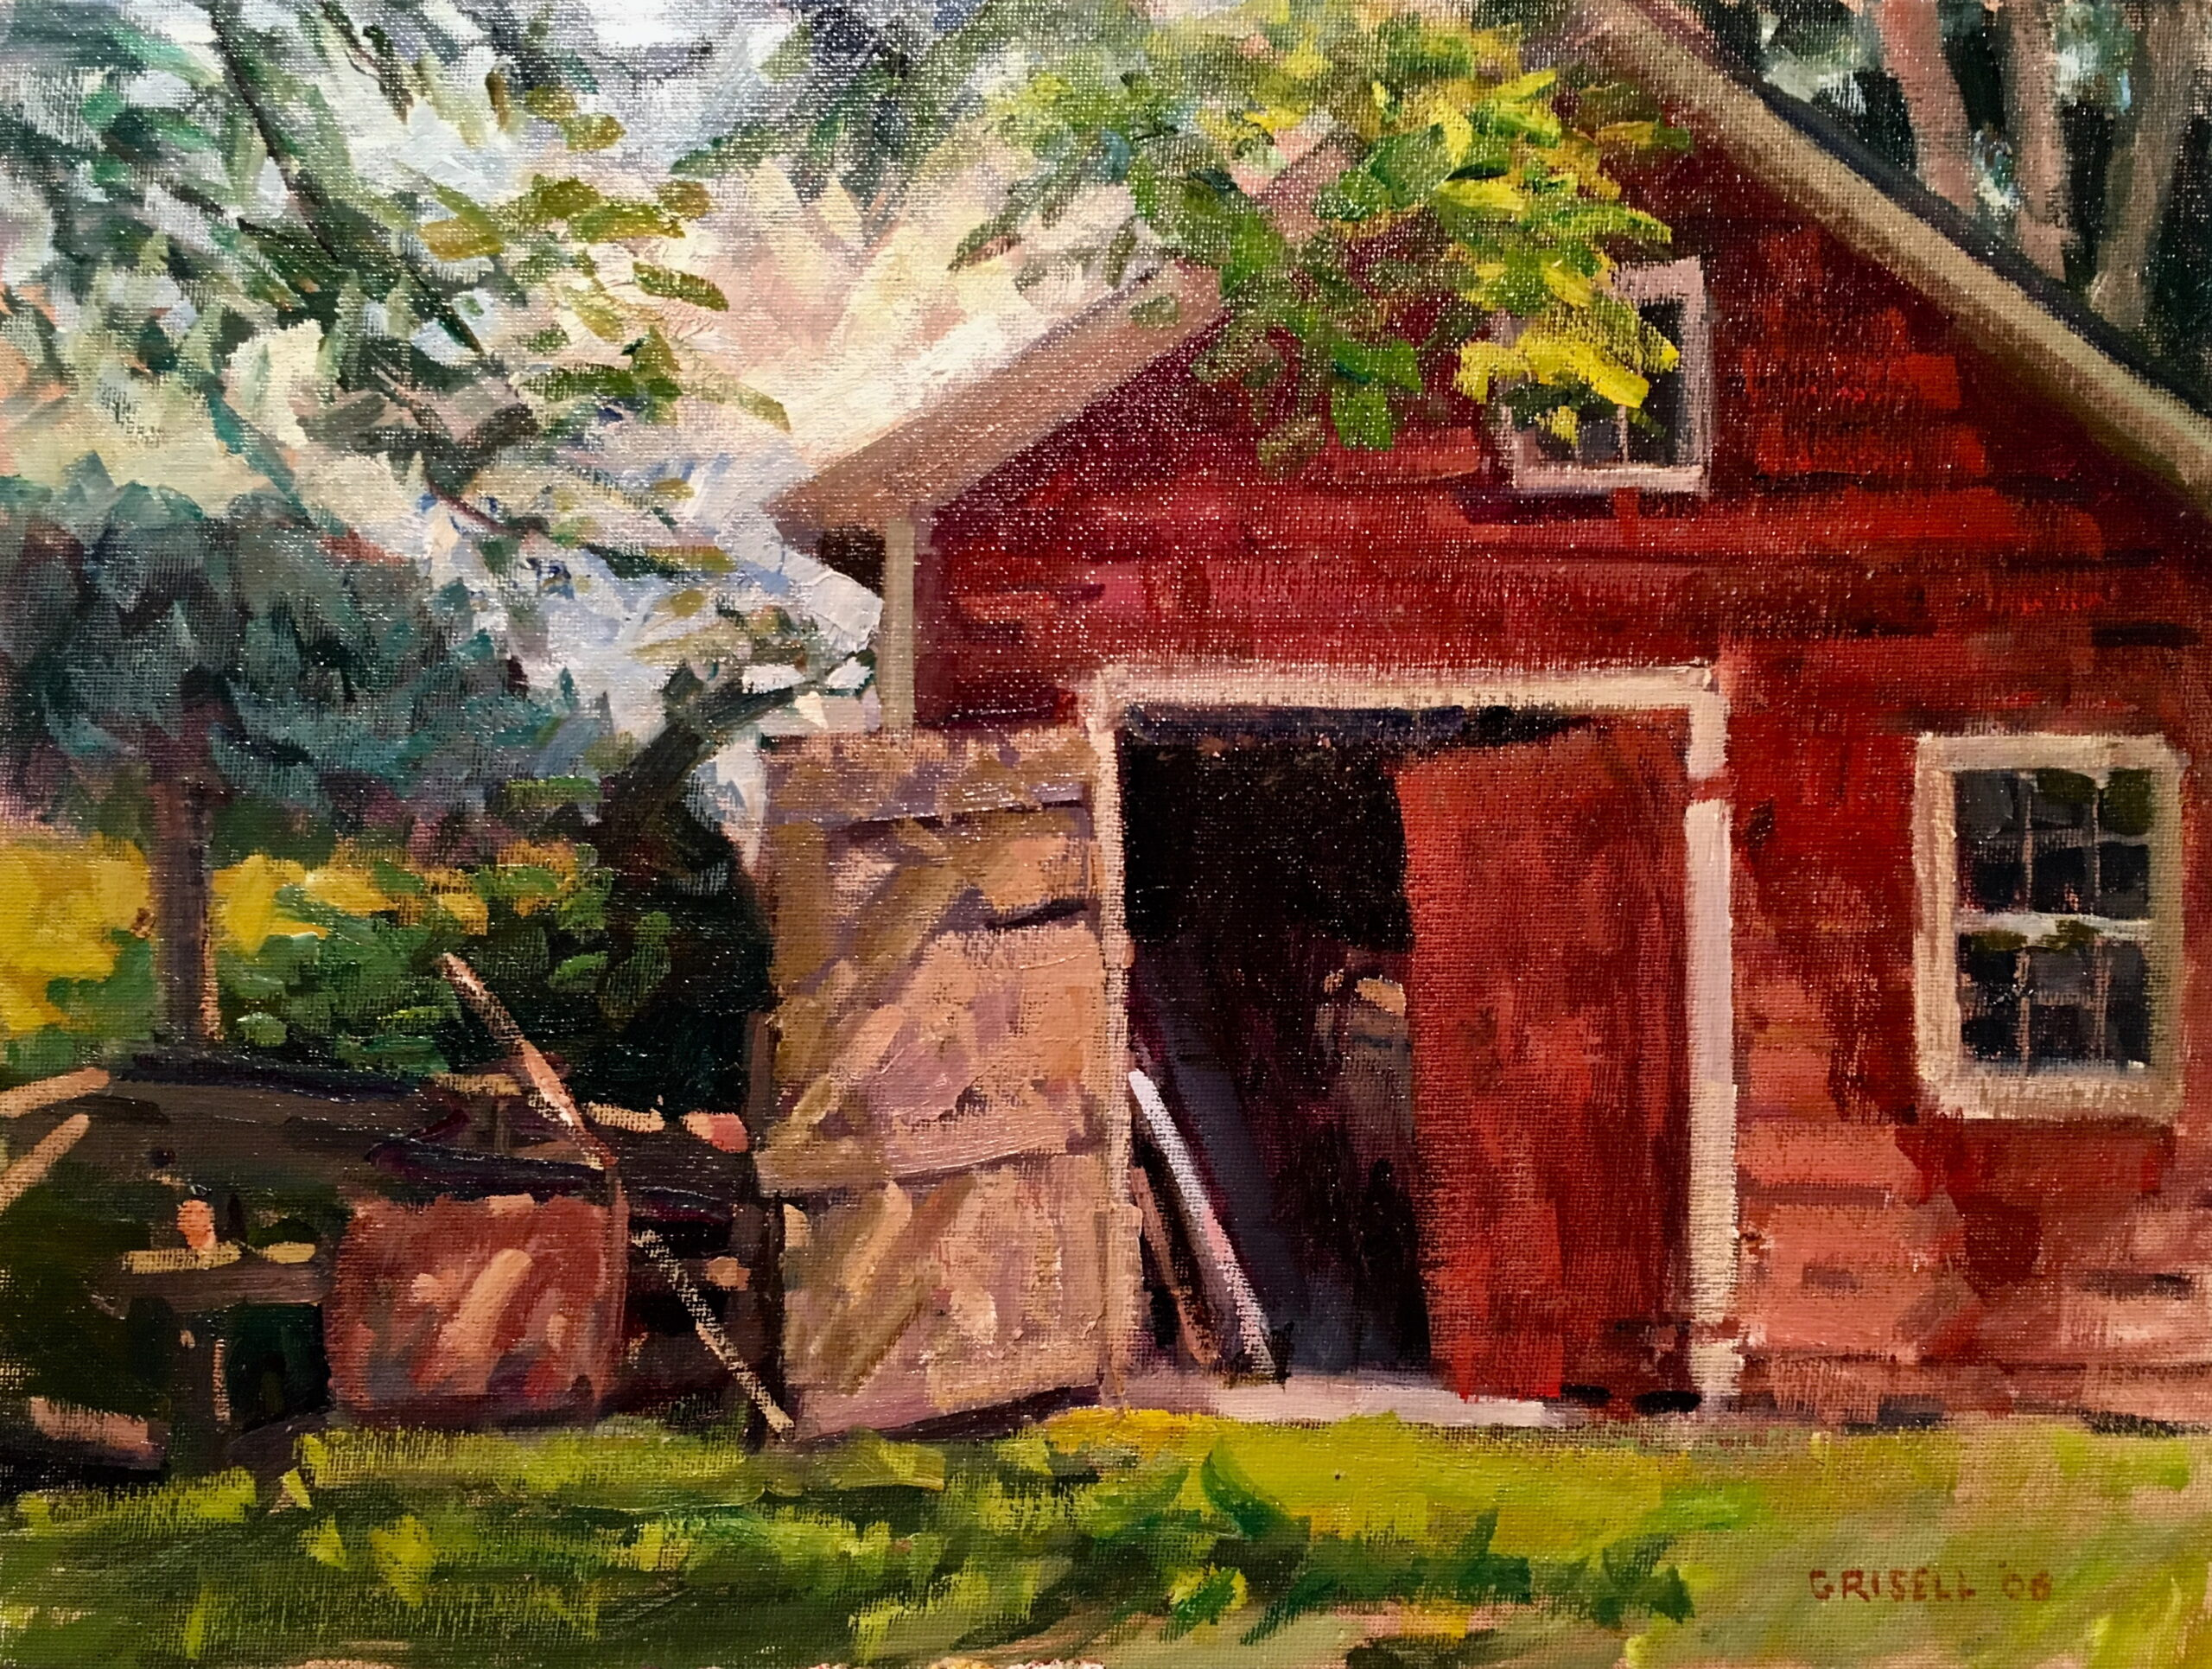 Barn Door, Oil on Canvas on Panel, 12 x 16 Inches, by Susan Grisell, $325